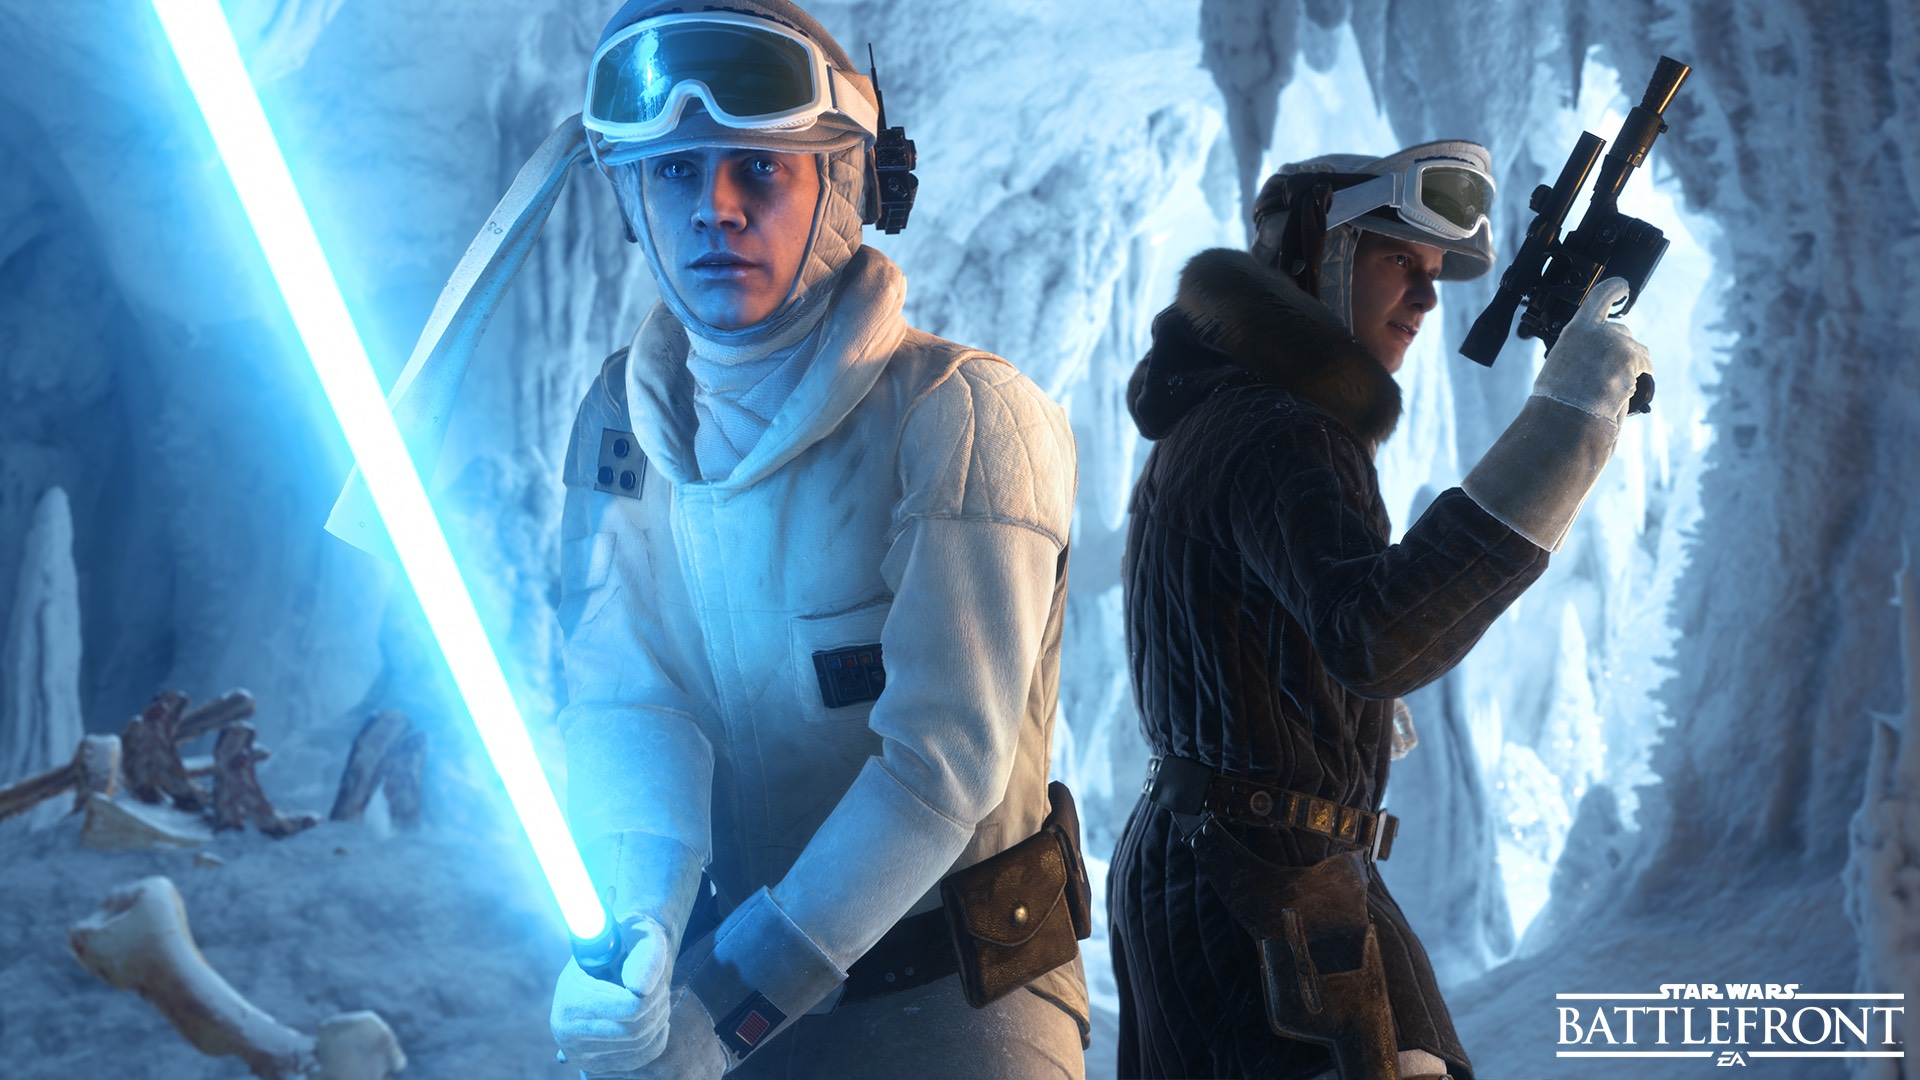 Star Wars Battlefront DLC revealed